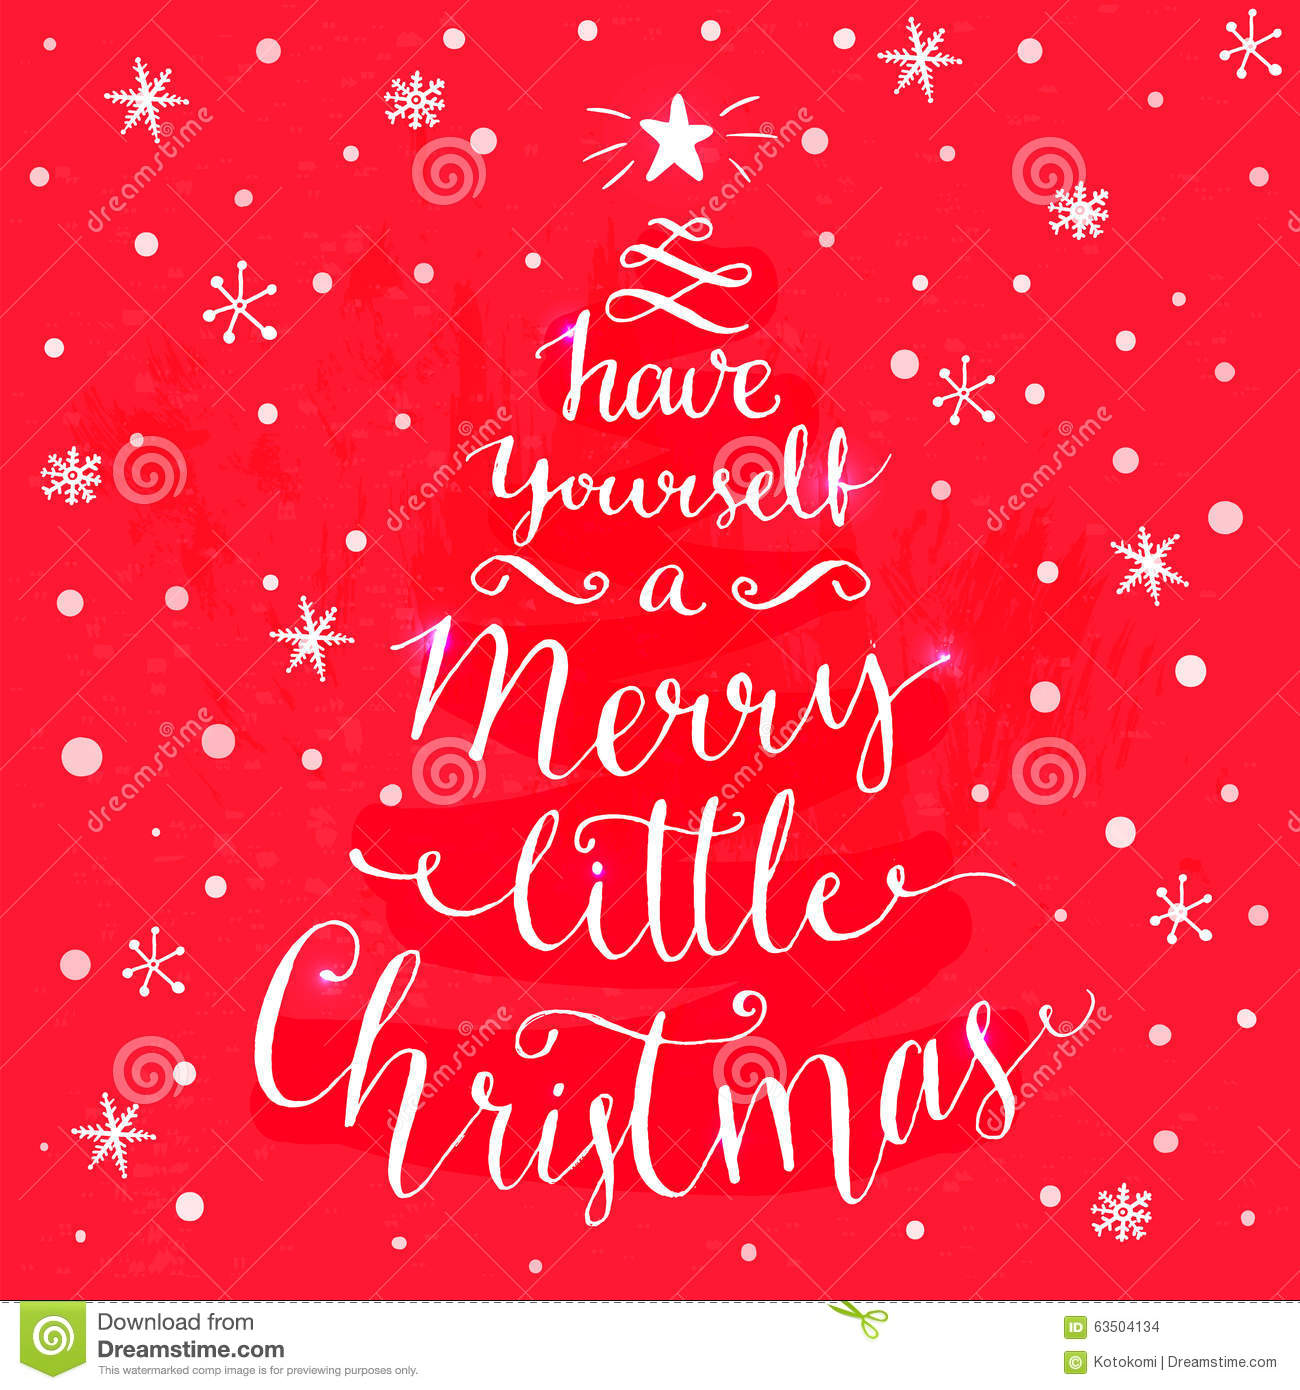 Have Yourself A Merry Little Christmas Whimsical Stock